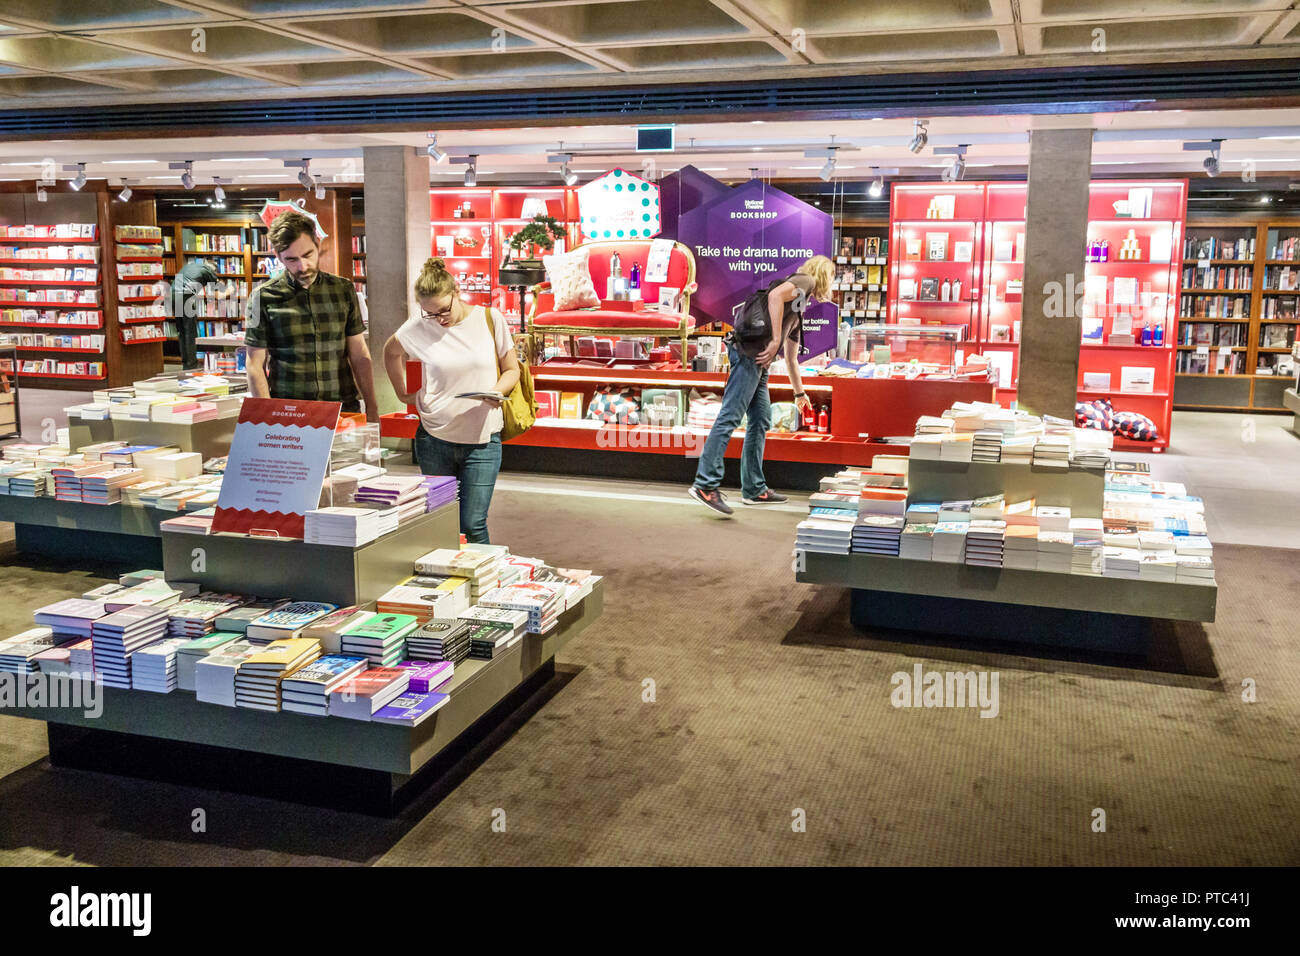 London England United Kingdom Great Britain Lambeth South Bank National Theatre theater Bookshop store gift shop shopping man woman couple looking boo - Stock Image